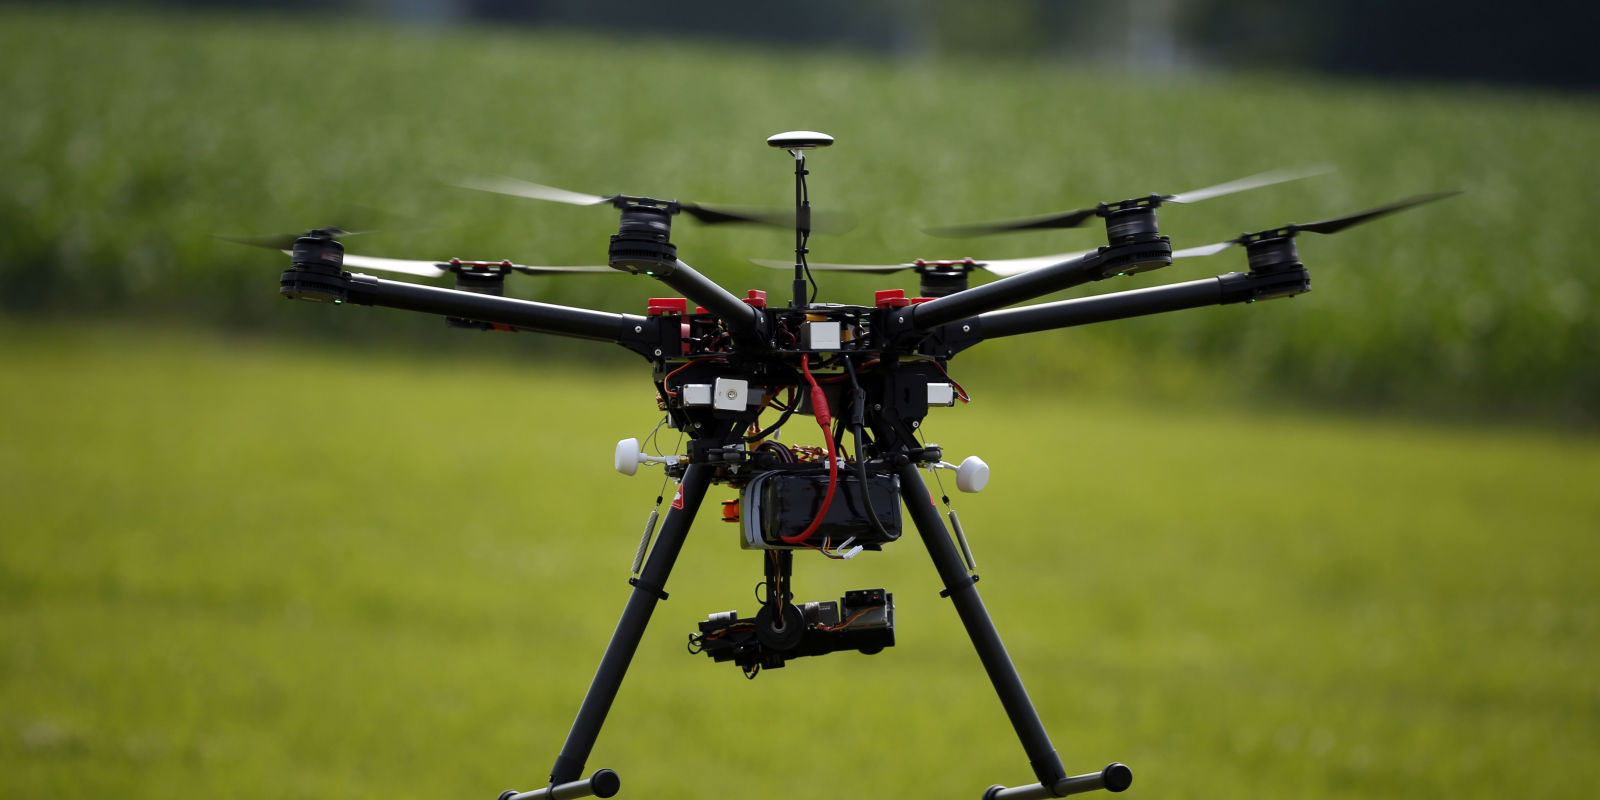 New York Will Give Drones an Airspace Corridor for Testing